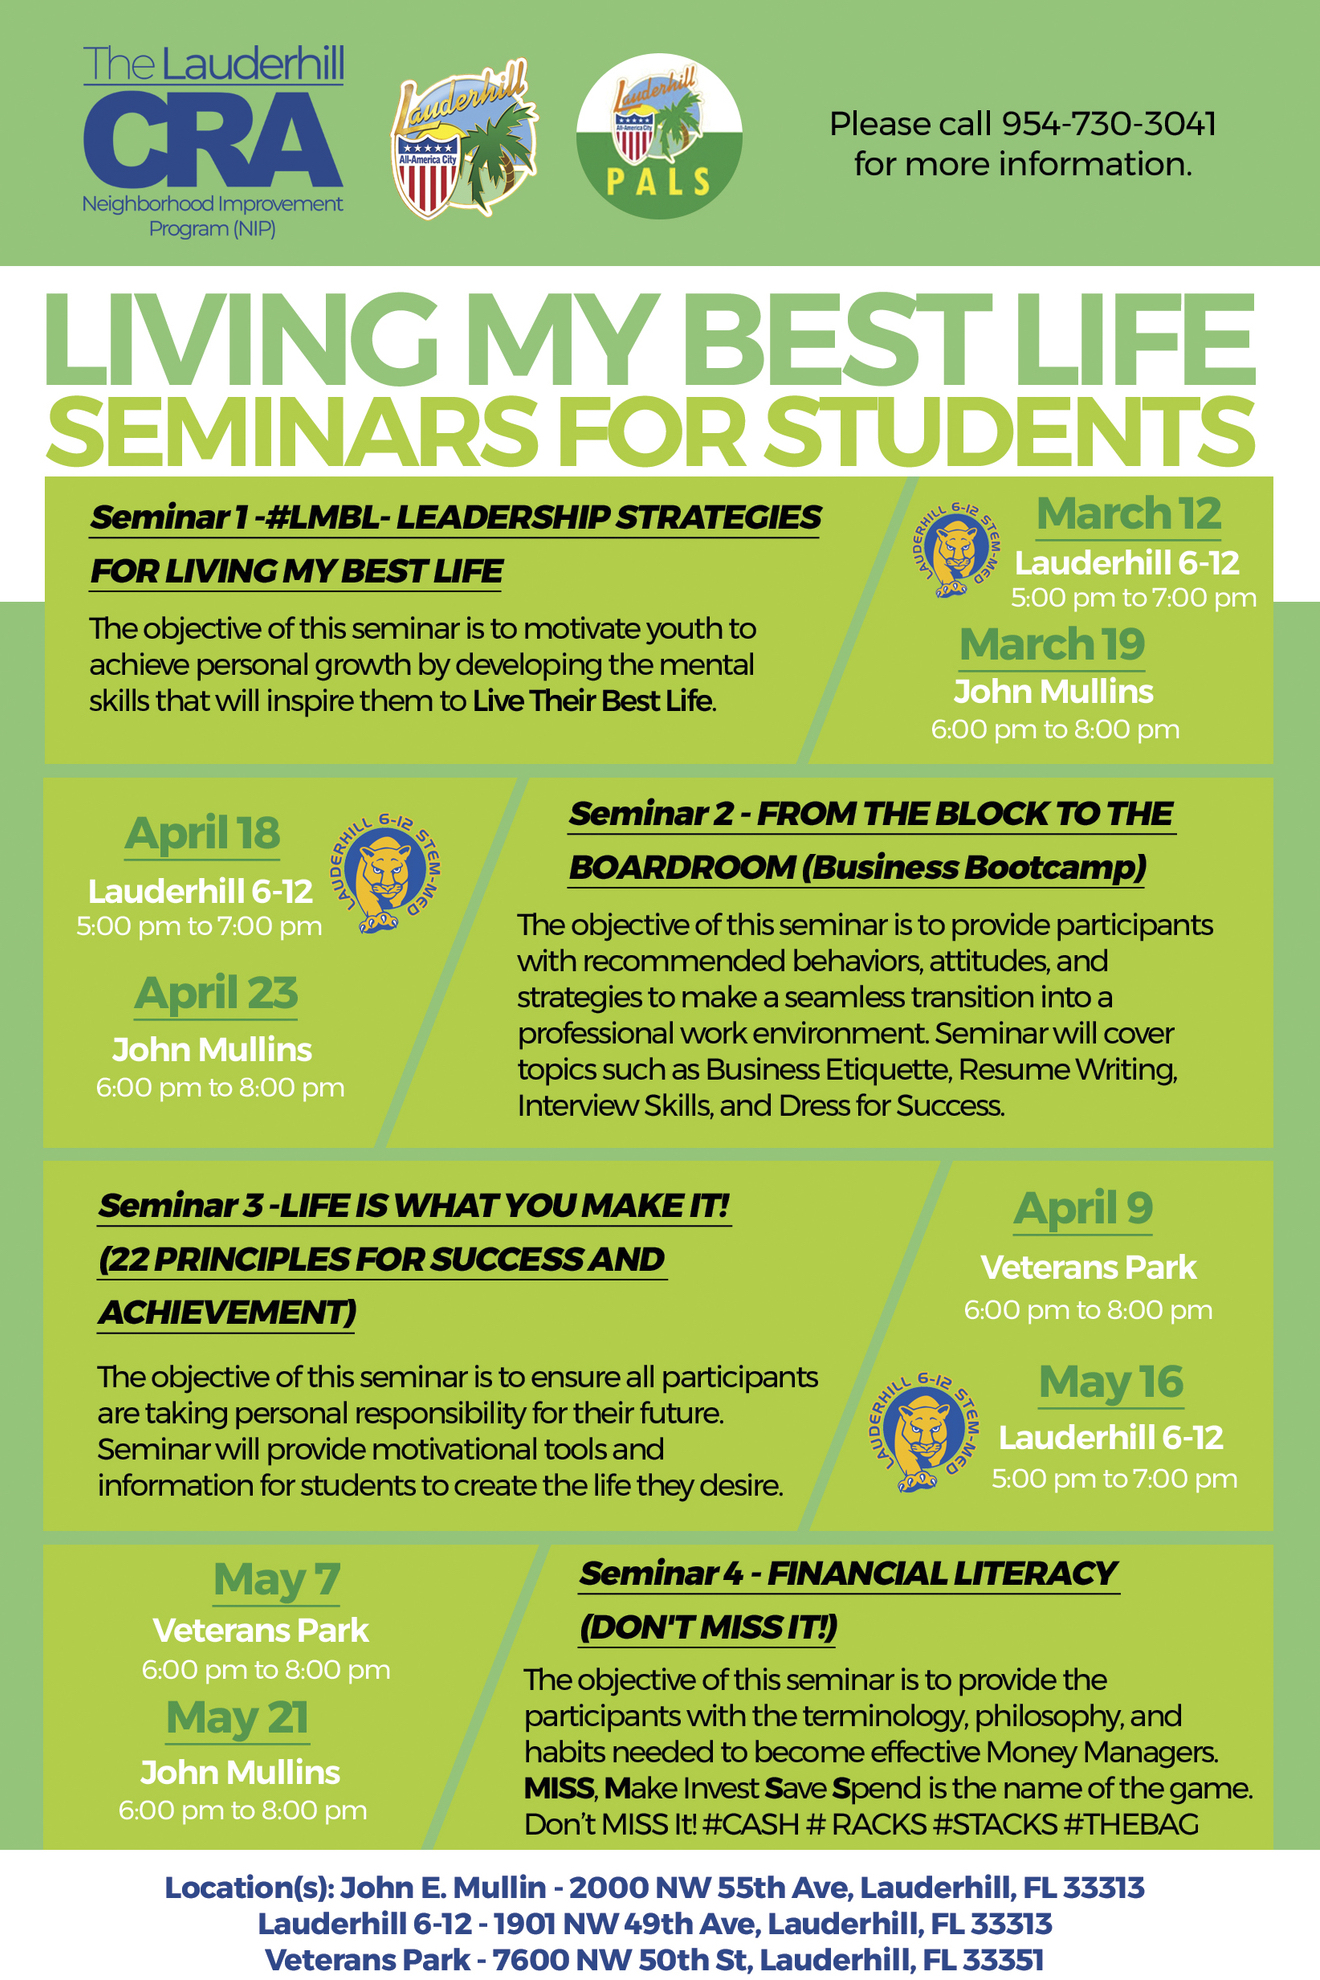 CRA - Living My Best Life Seminars for Students Flyer